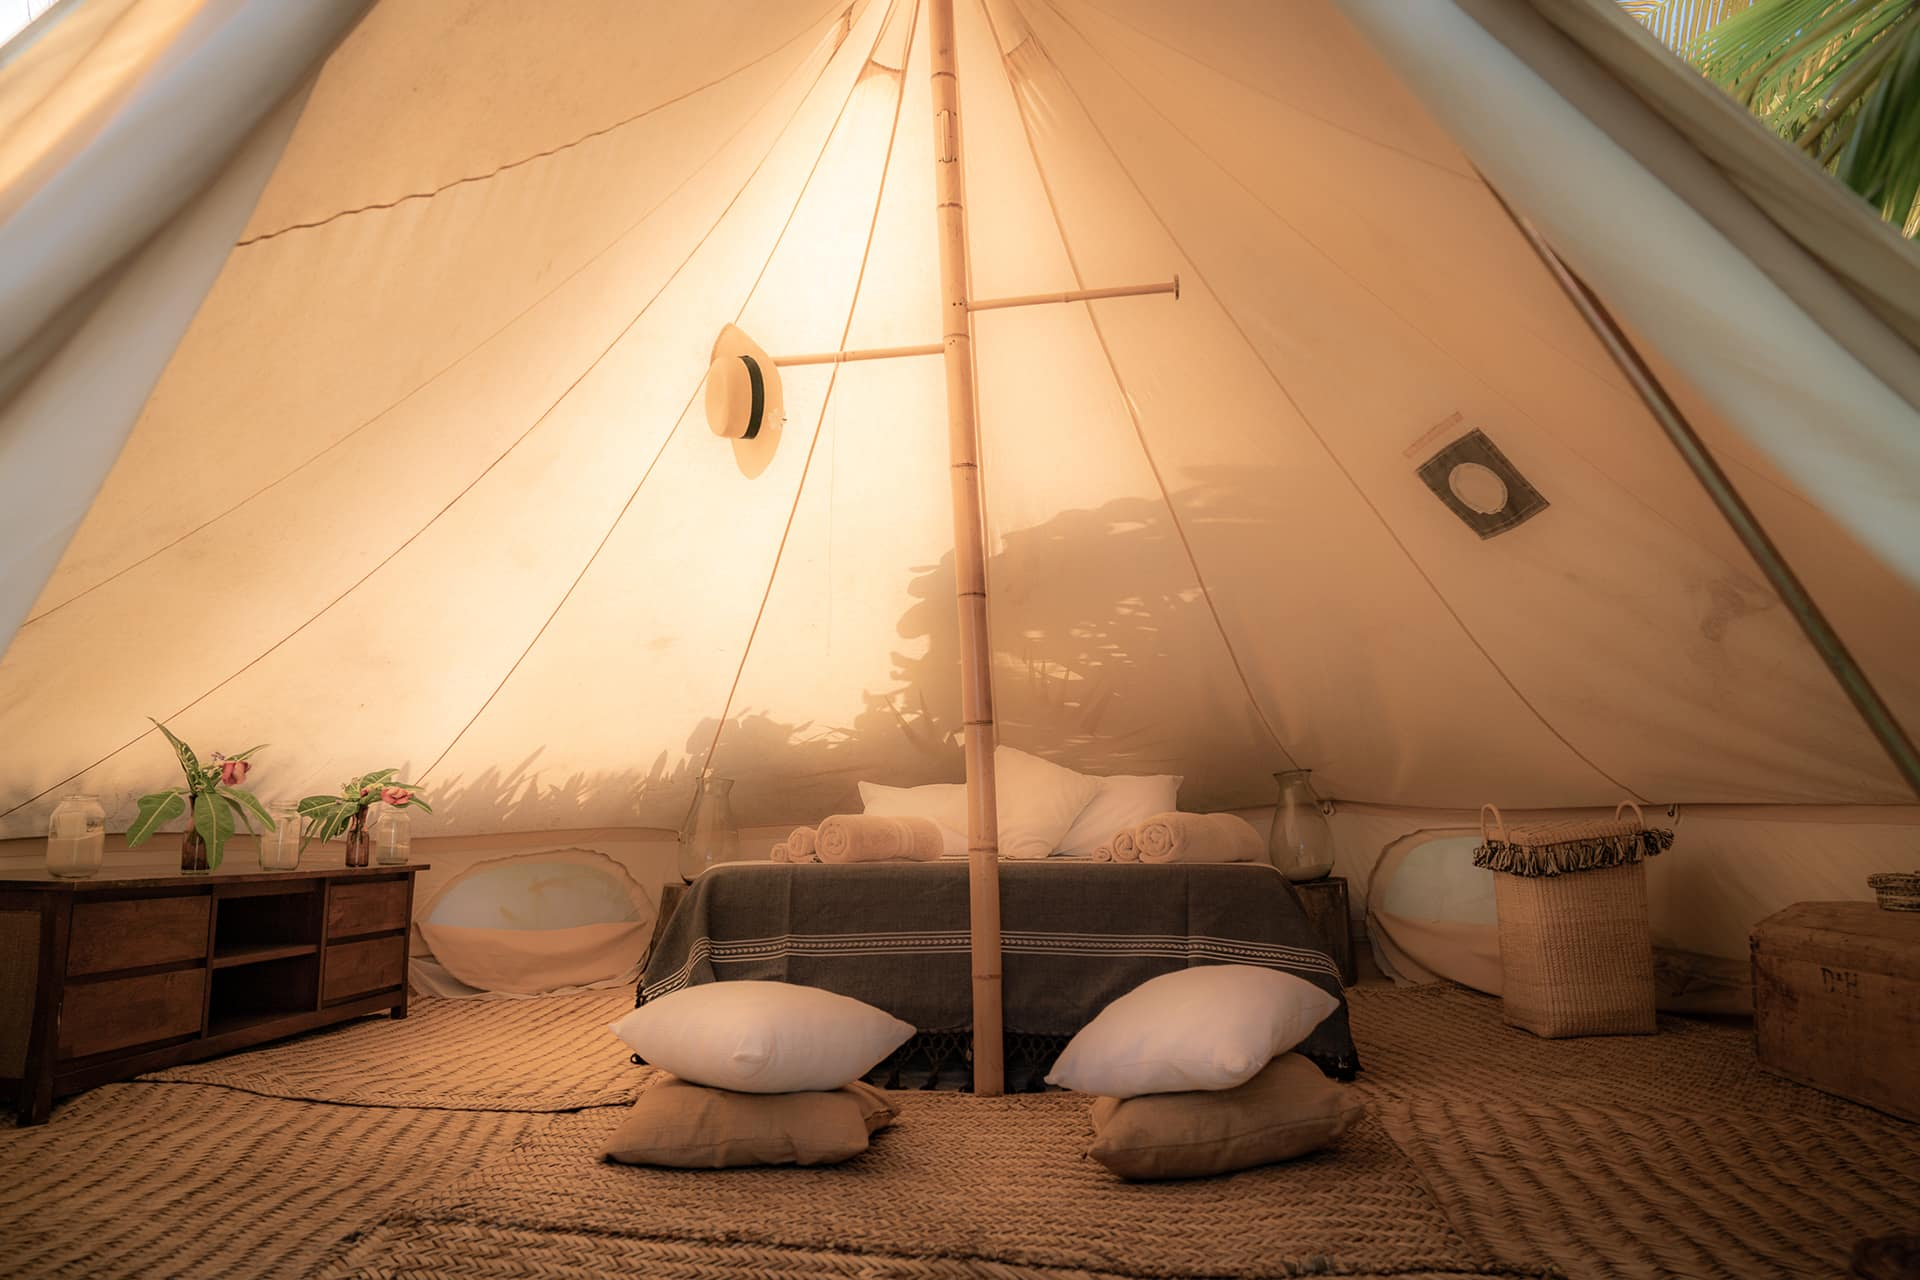 Private Outdoor Glamping Tent - $3050 (4 spots) - Outdoor luxury glamping tent all for yourself in the heart of nature. Tent has queen size bed and ncludes comfortable shared bathrooms and showers. Best option for those who want privacy and magical connection with nature.** Price increases to $3450 after July 15th! **